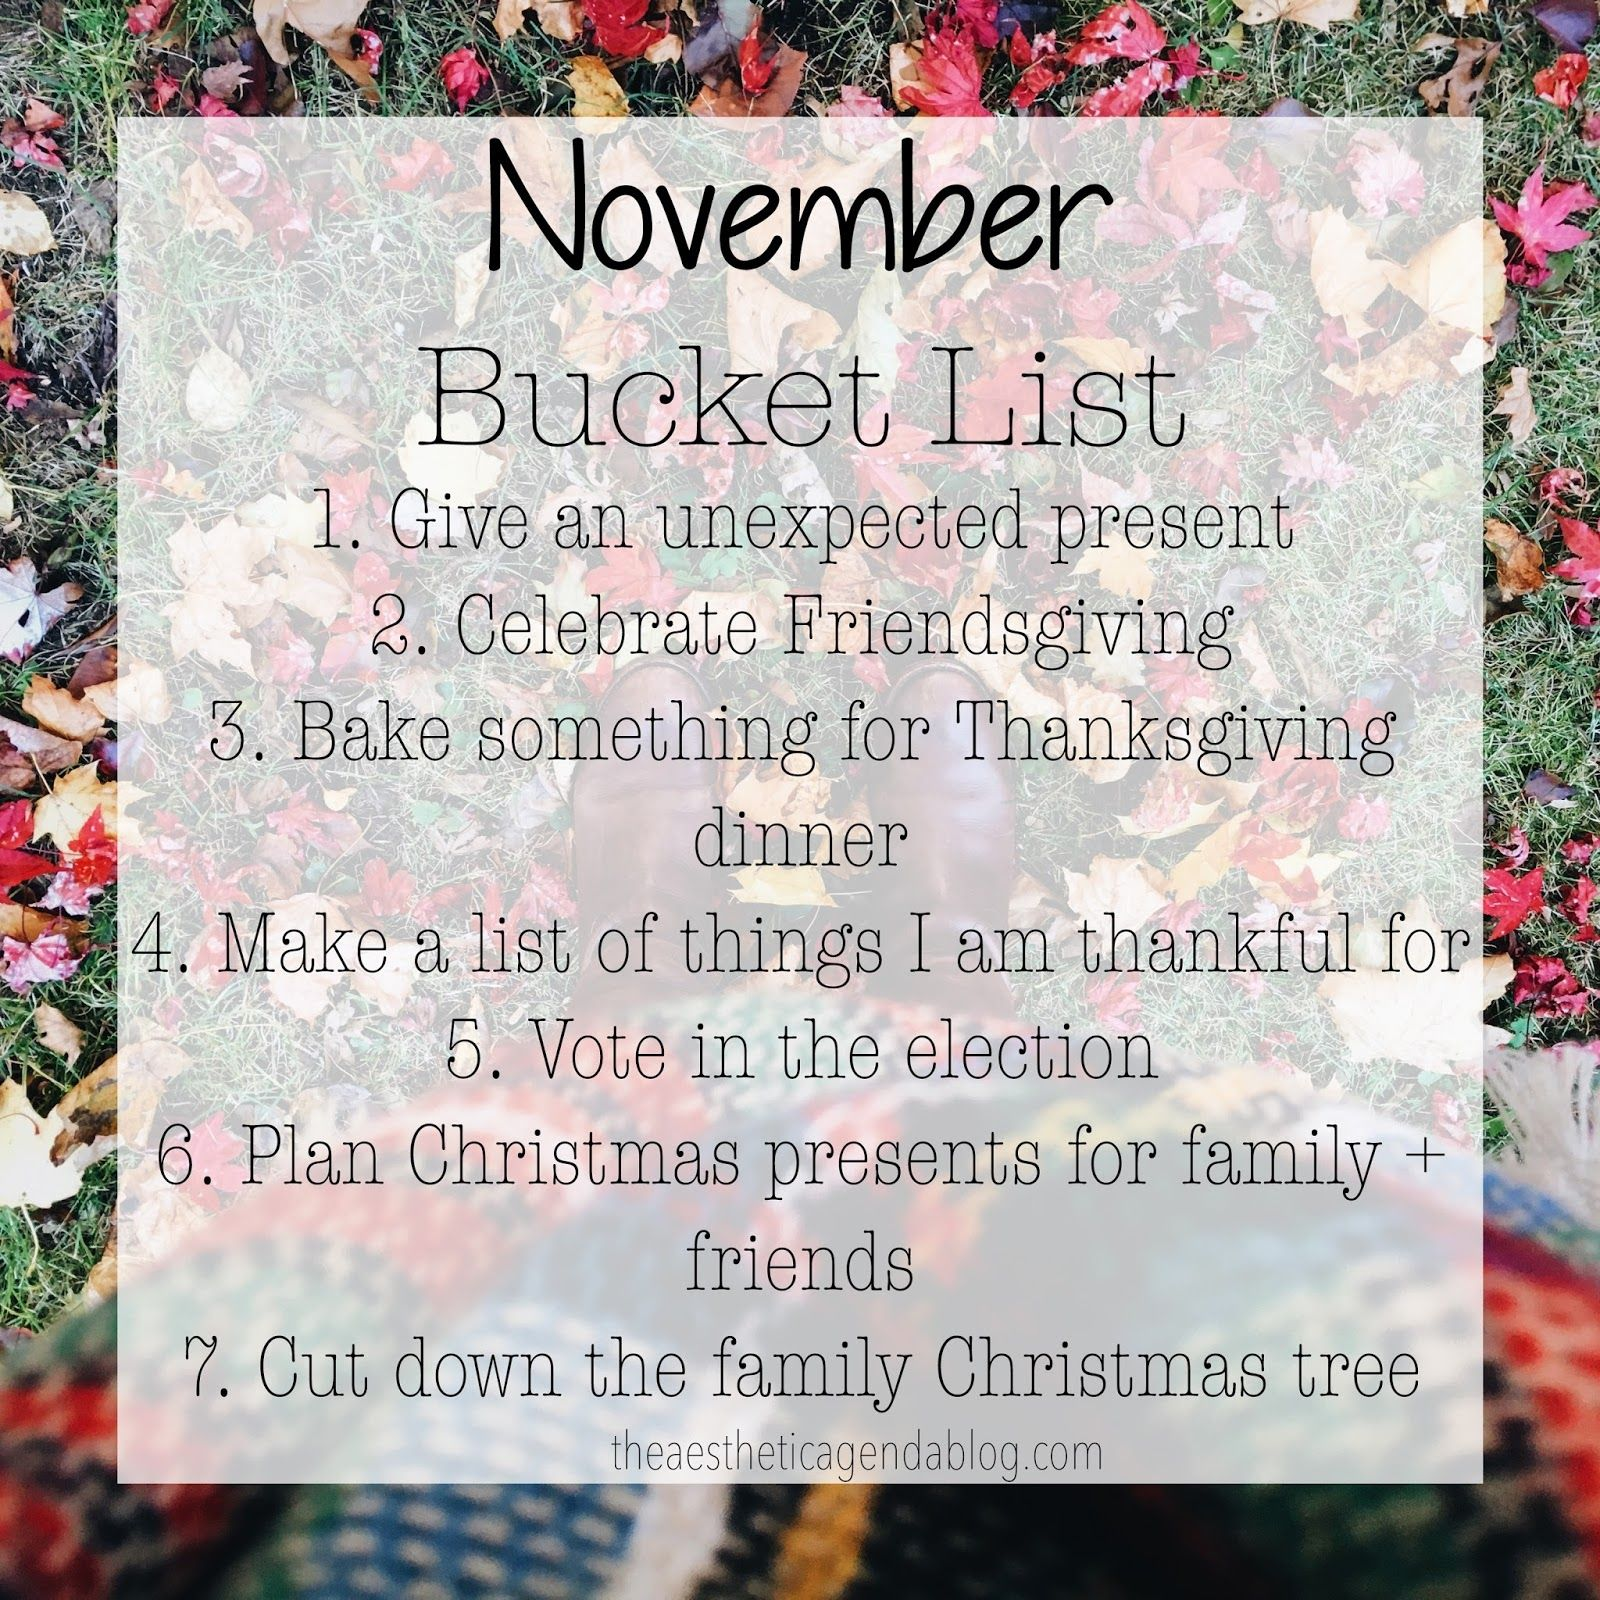 November Bucket List  The Aesthetic Agenda  Aesthetic